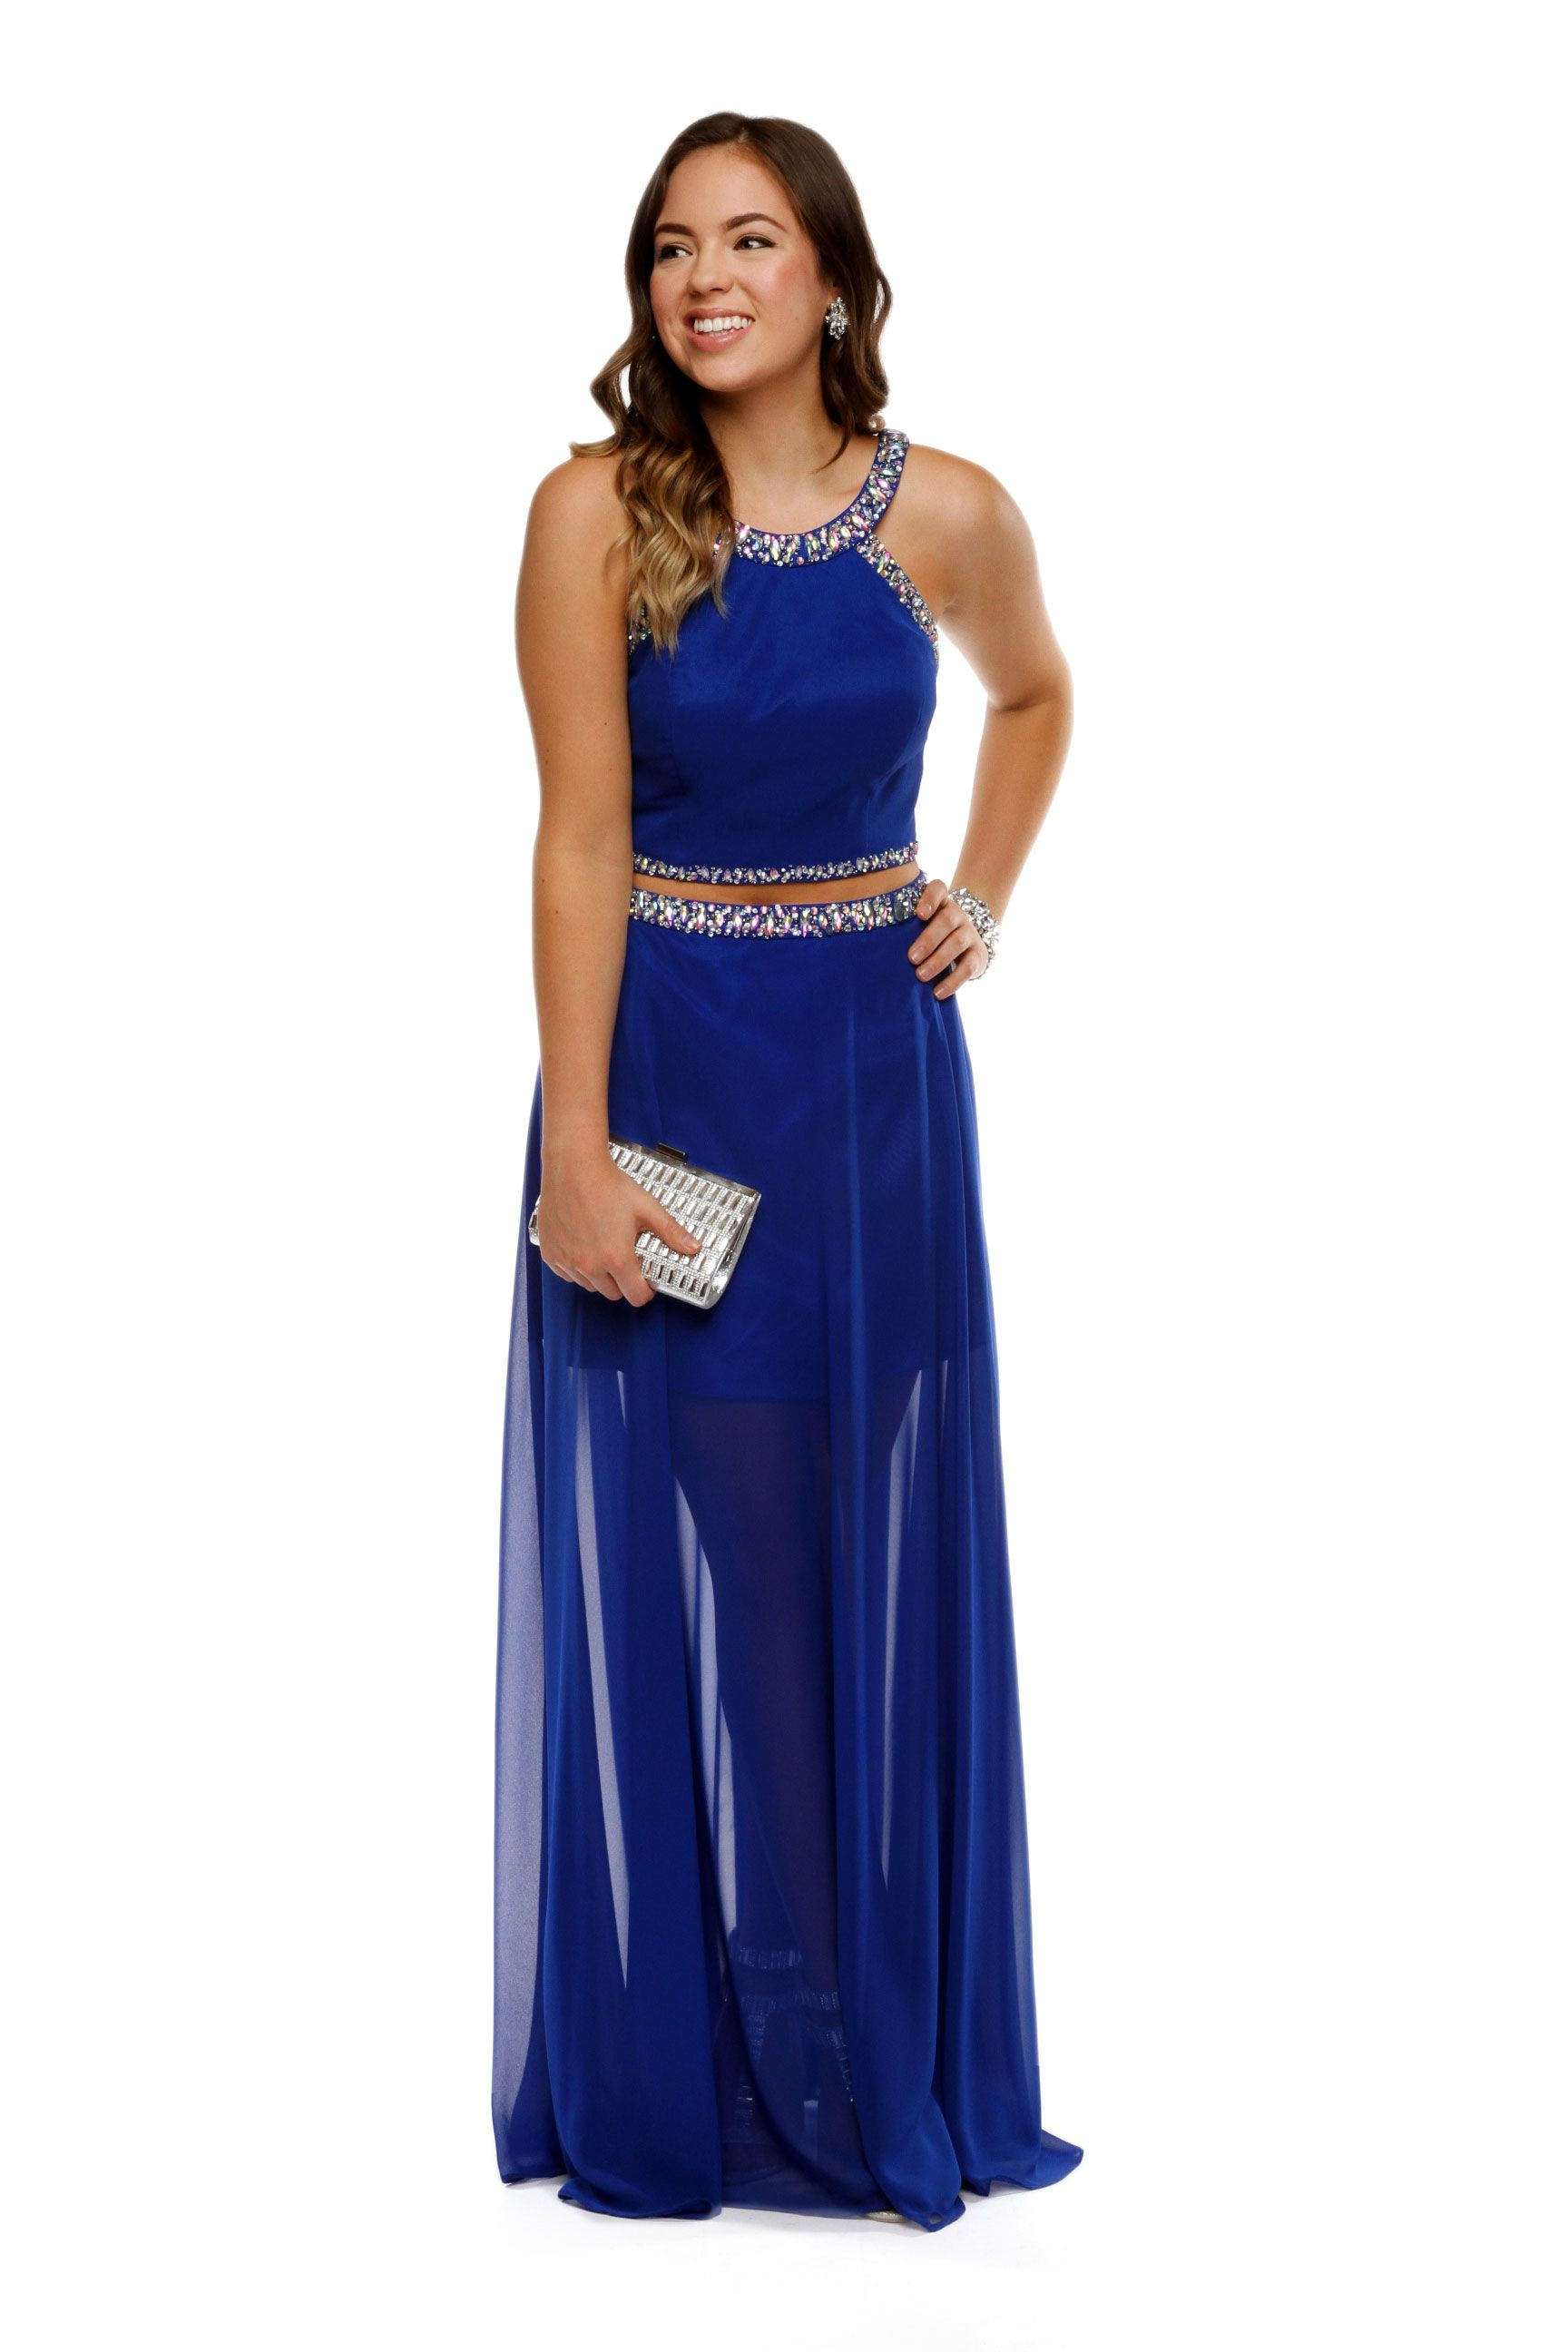 Prom Dress Style Quiz Quizzes For Prom 2014 Fashion The